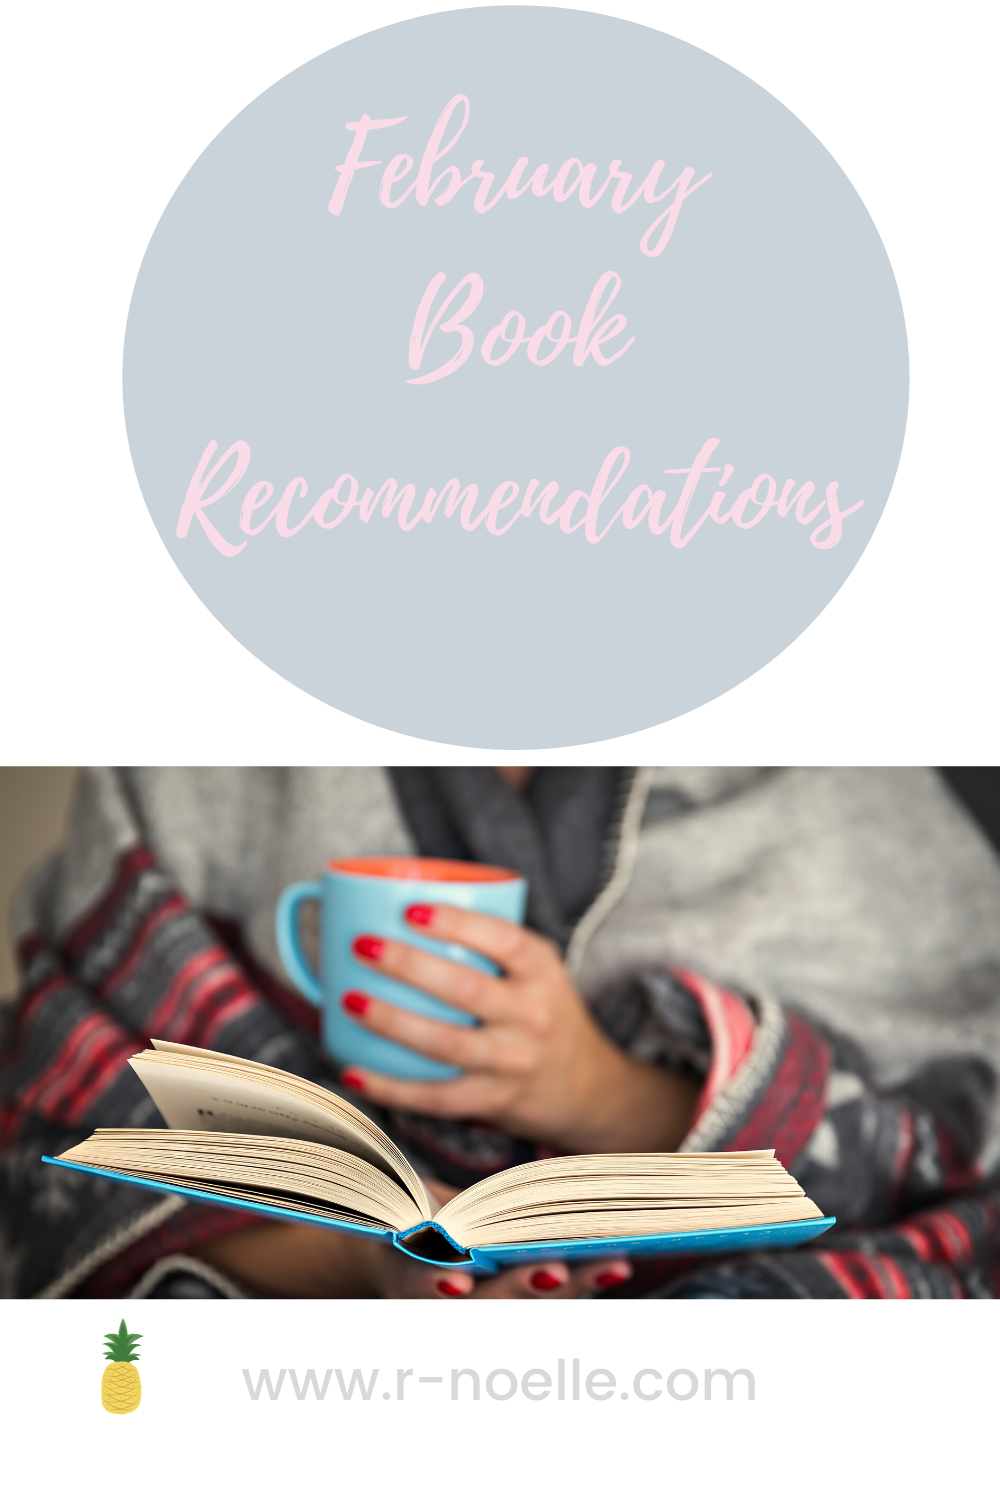 Pinterest pin for 2020 February book recommendations.